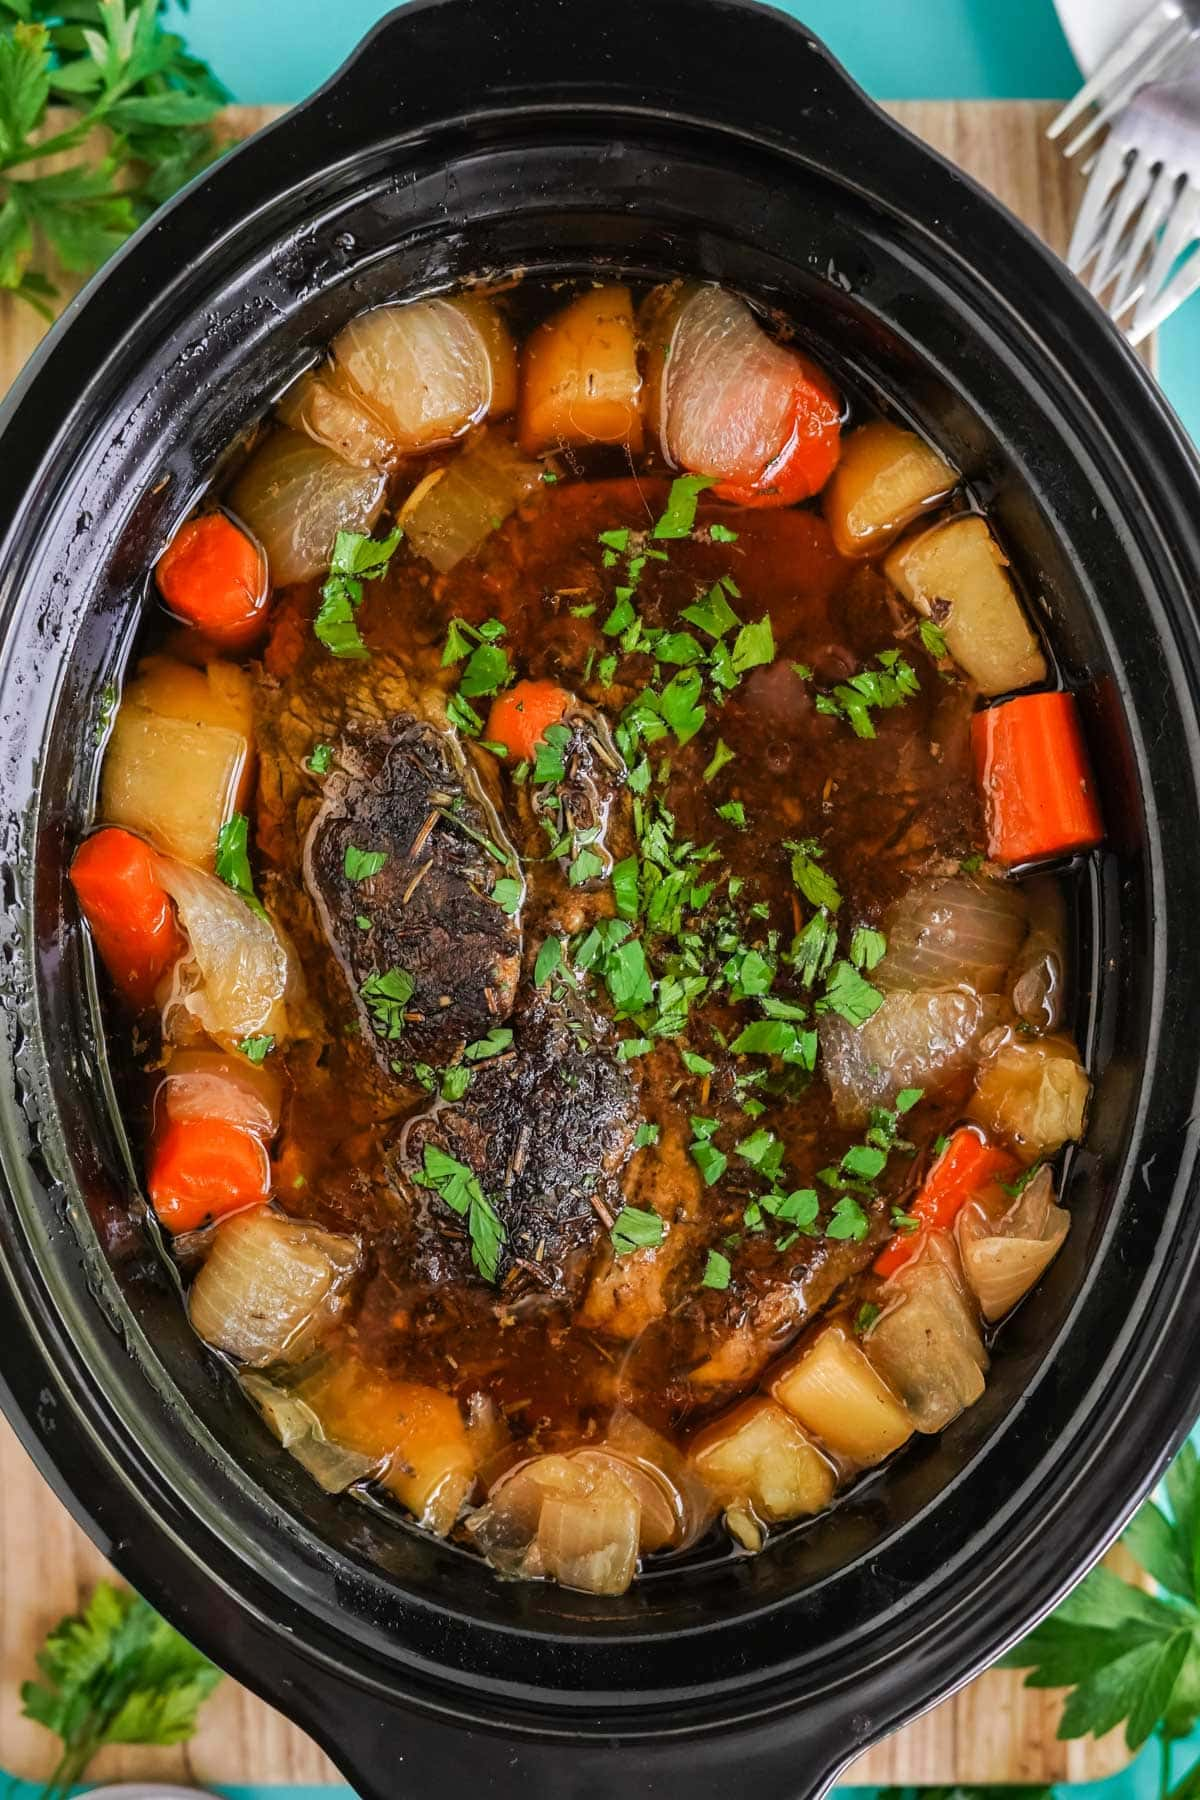 chuck roast in a slow cooker surrounded by potatoes and carrots with parsley on top